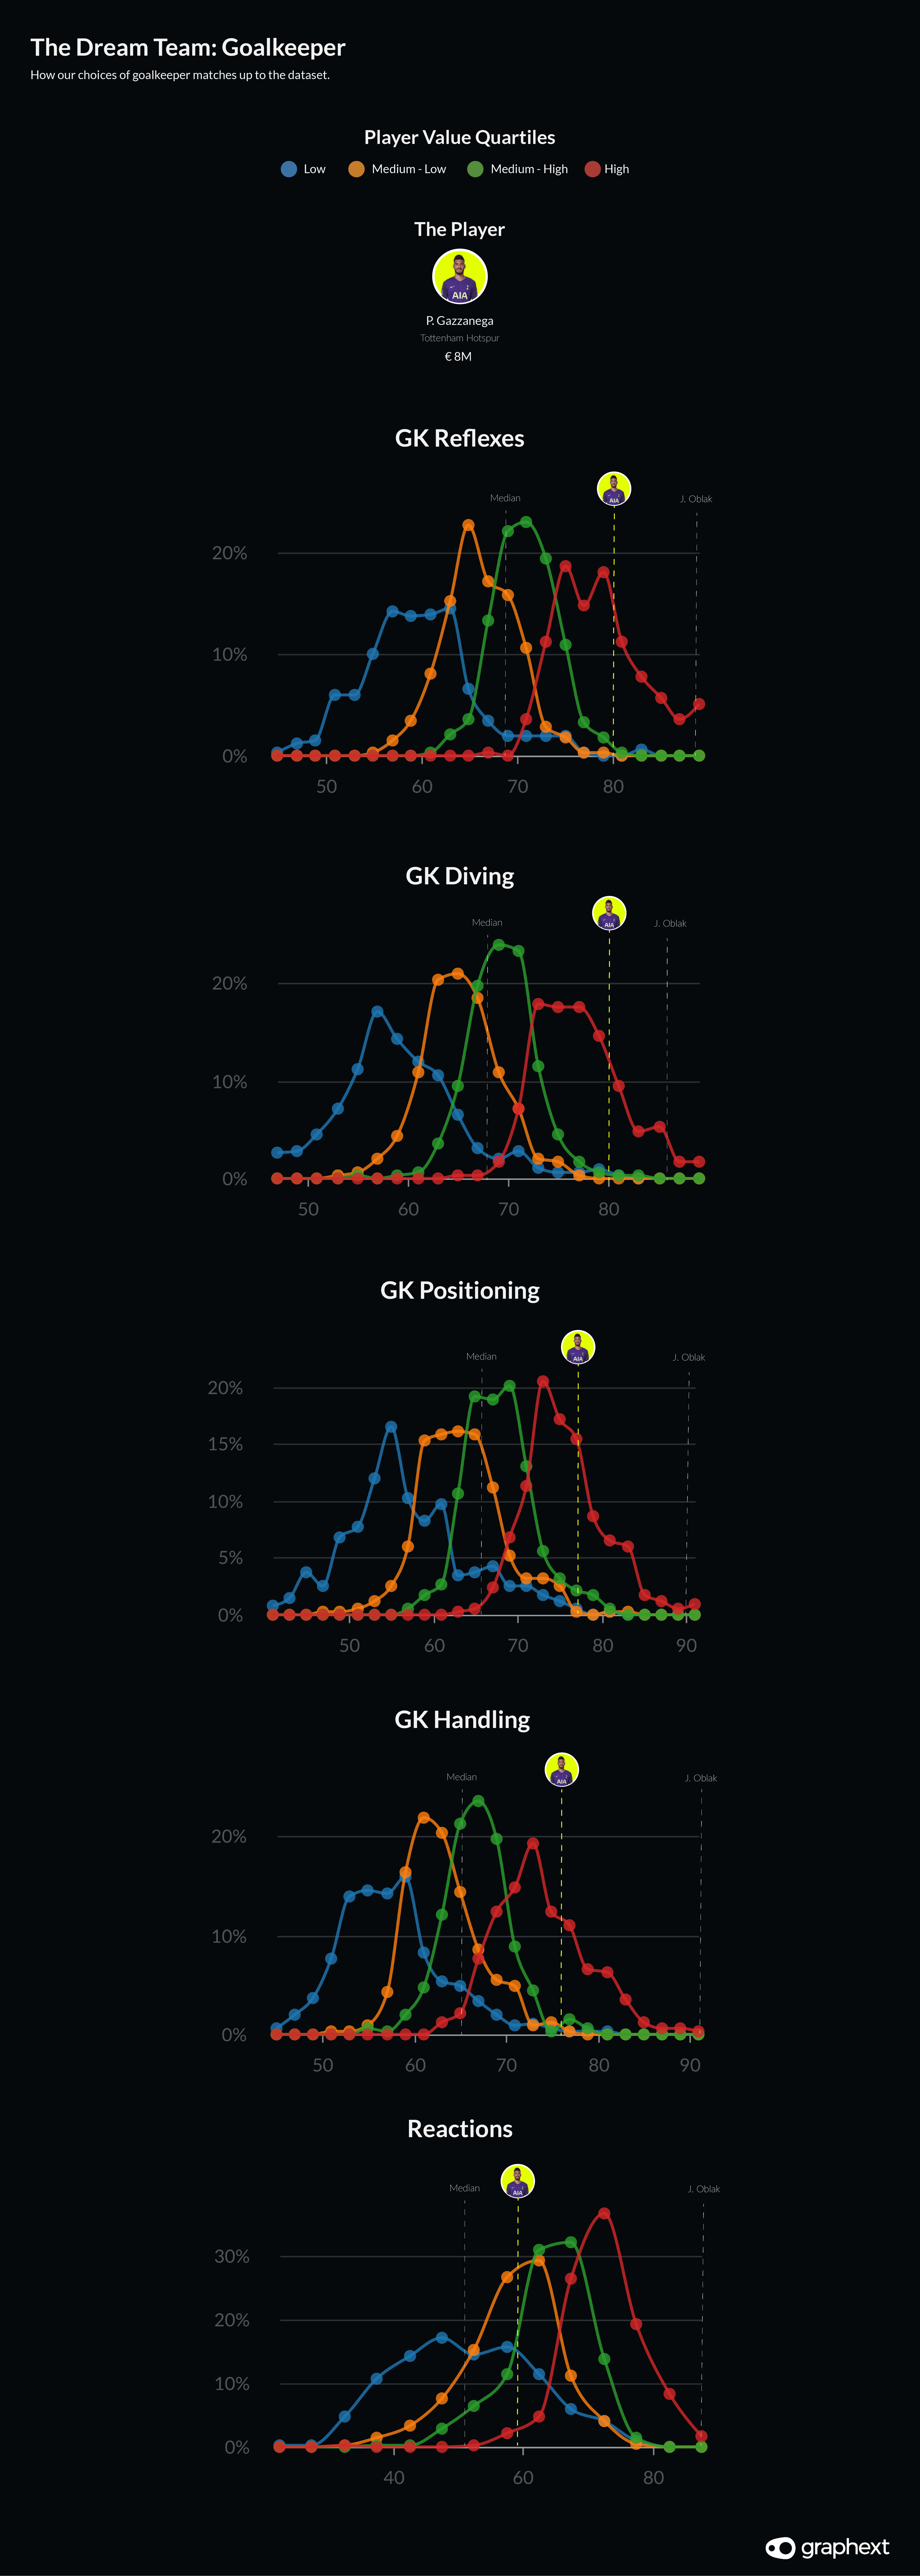 A series of charts showing the characteristics of the chosen goalkeeper in our data-driven football dream team.